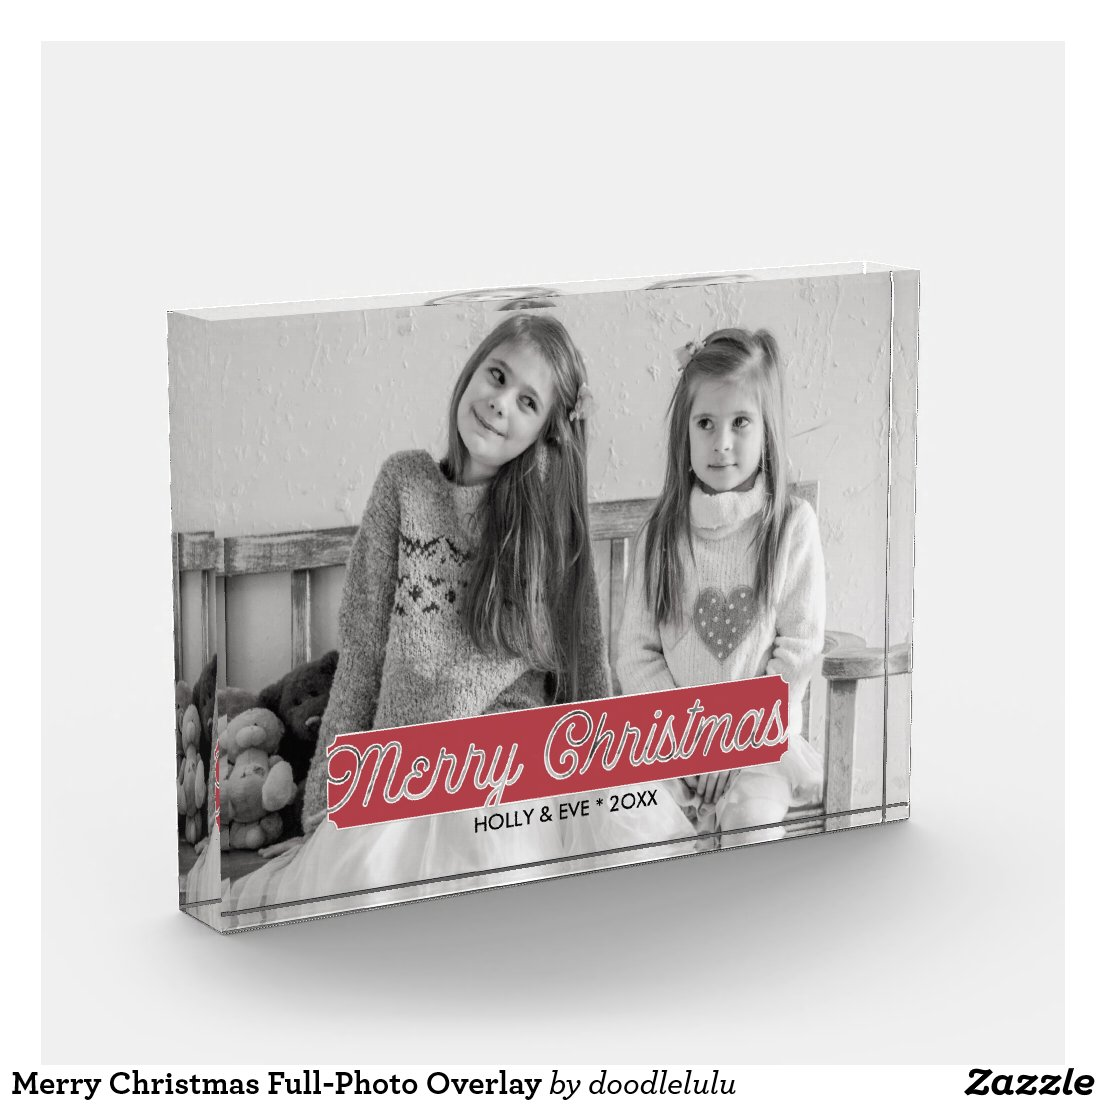 Merry Christmas Full-Photo Overlay Photo Block